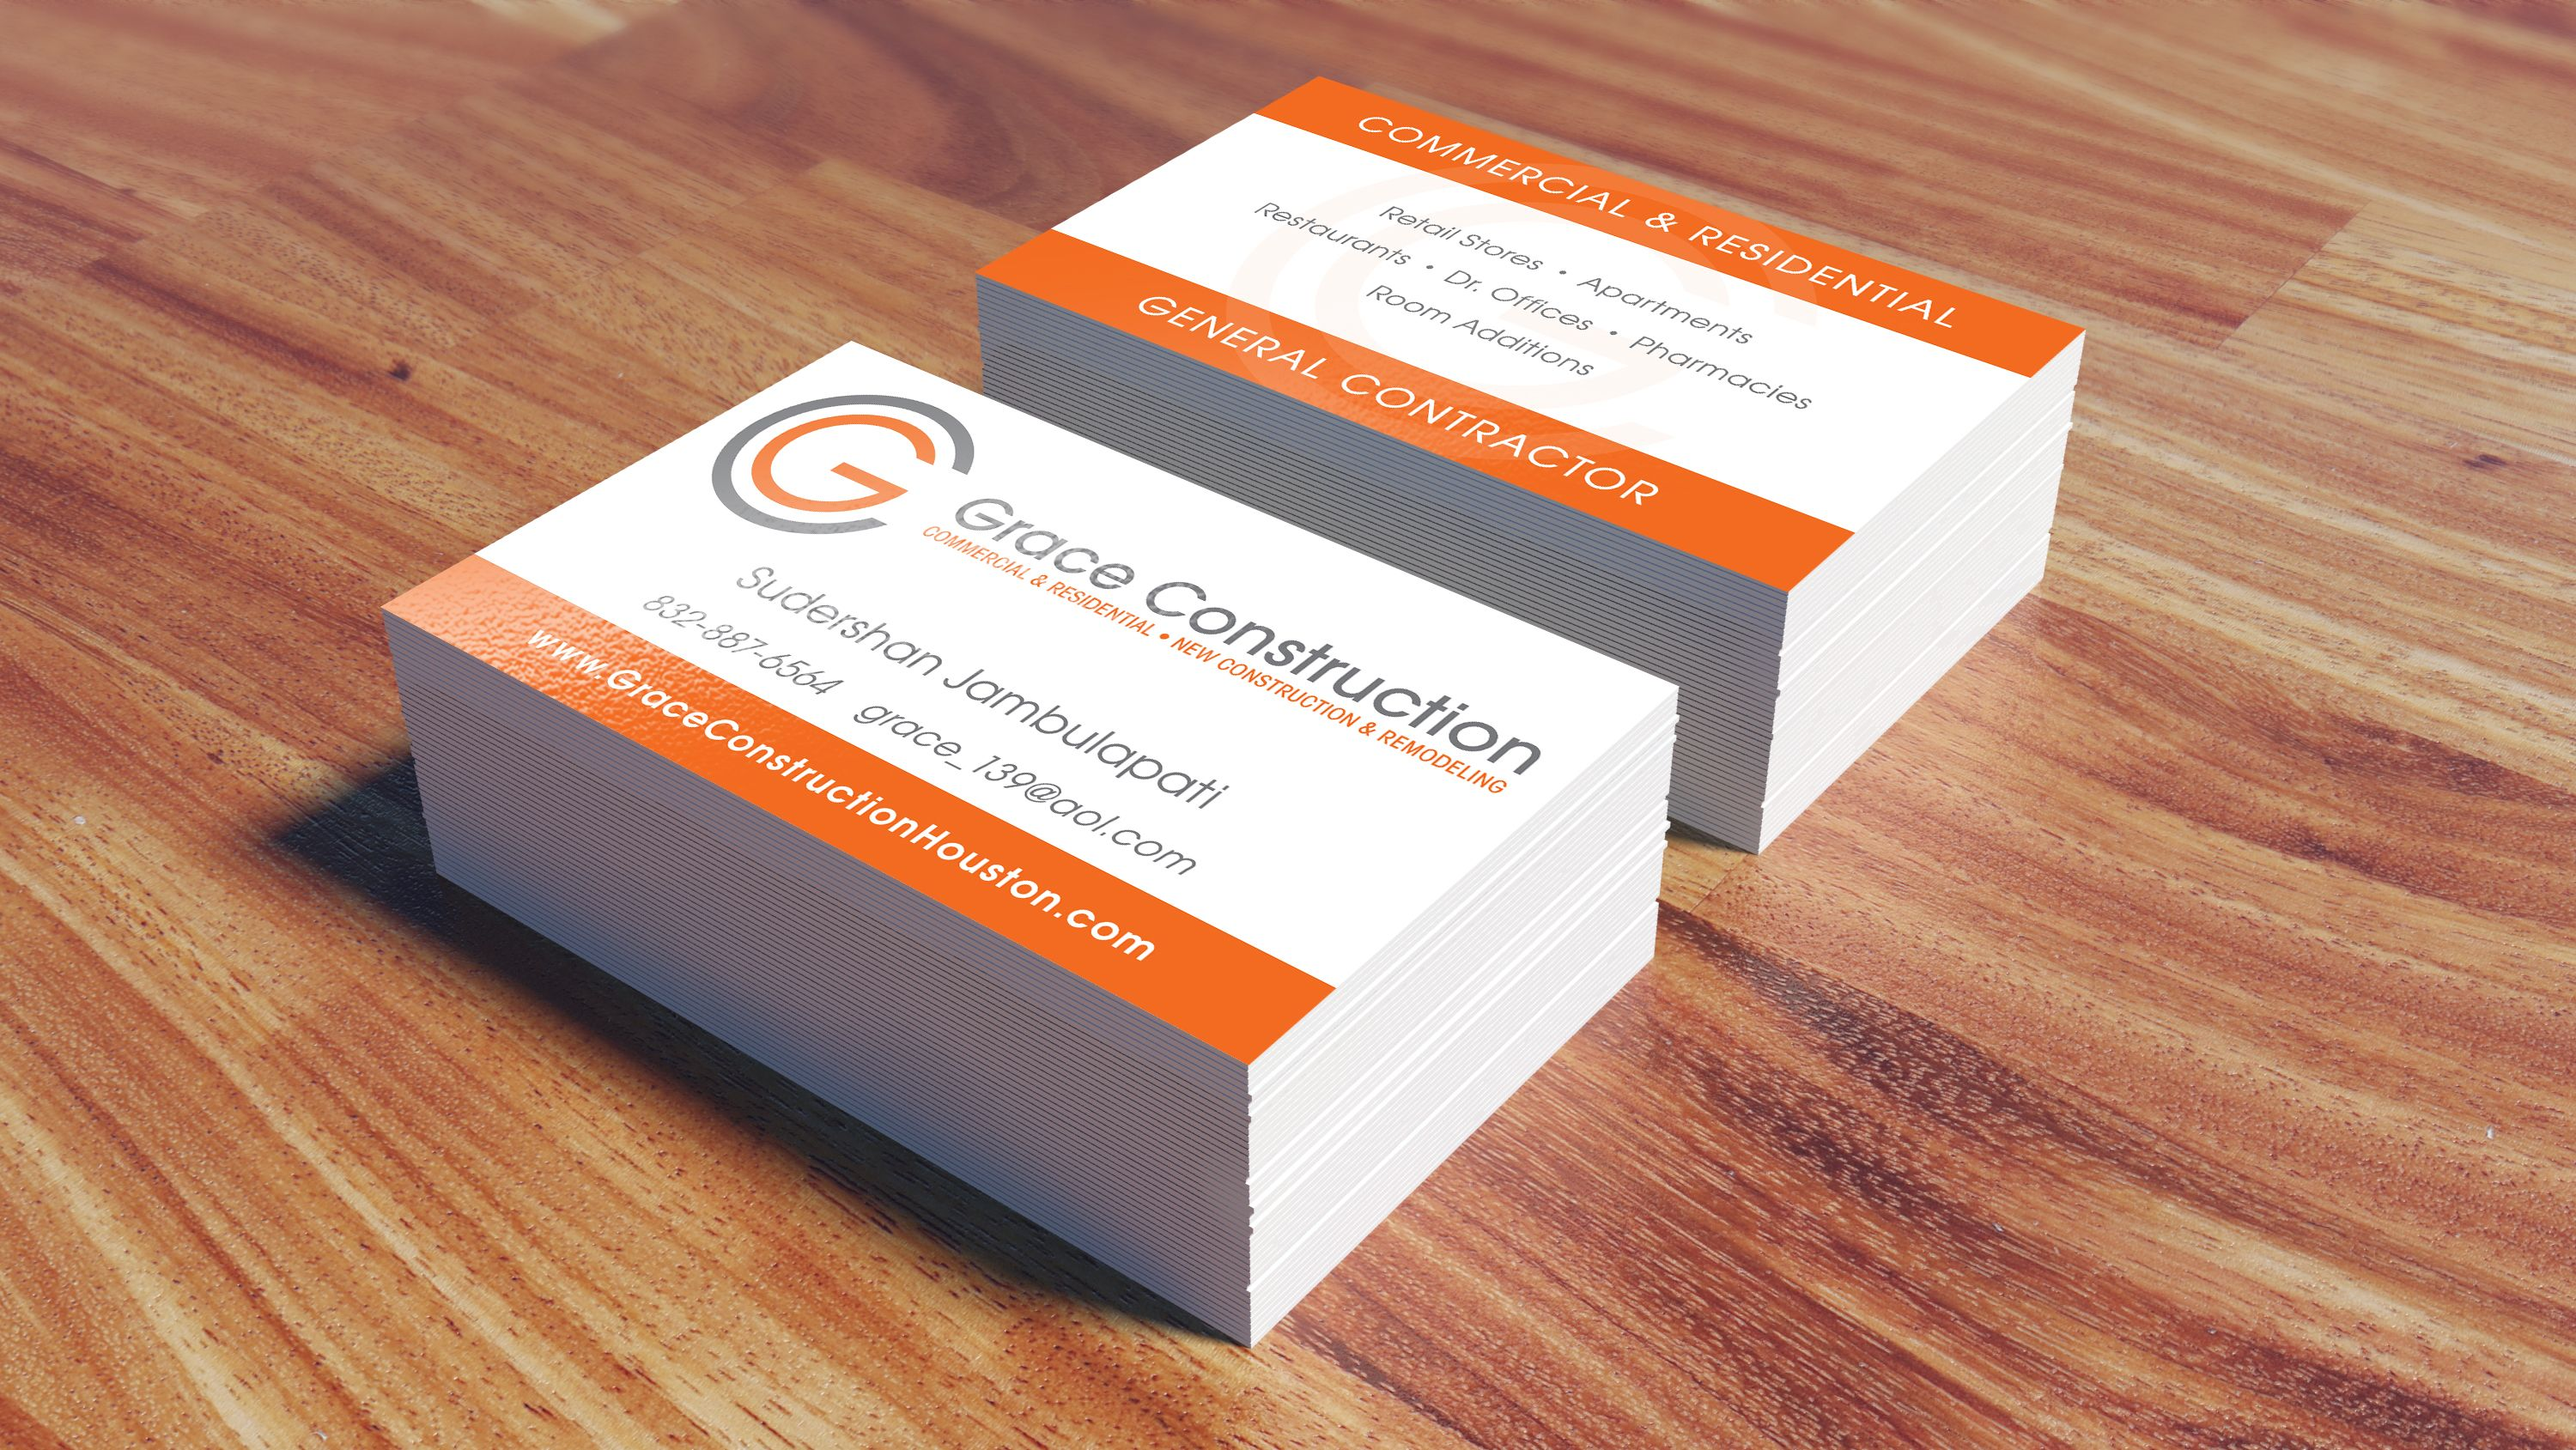 Grace construction business card designed printed by alphagraphics grace construction business card designed printed by alphagraphics sugar land business cards pinterest construction business cards reheart Image collections